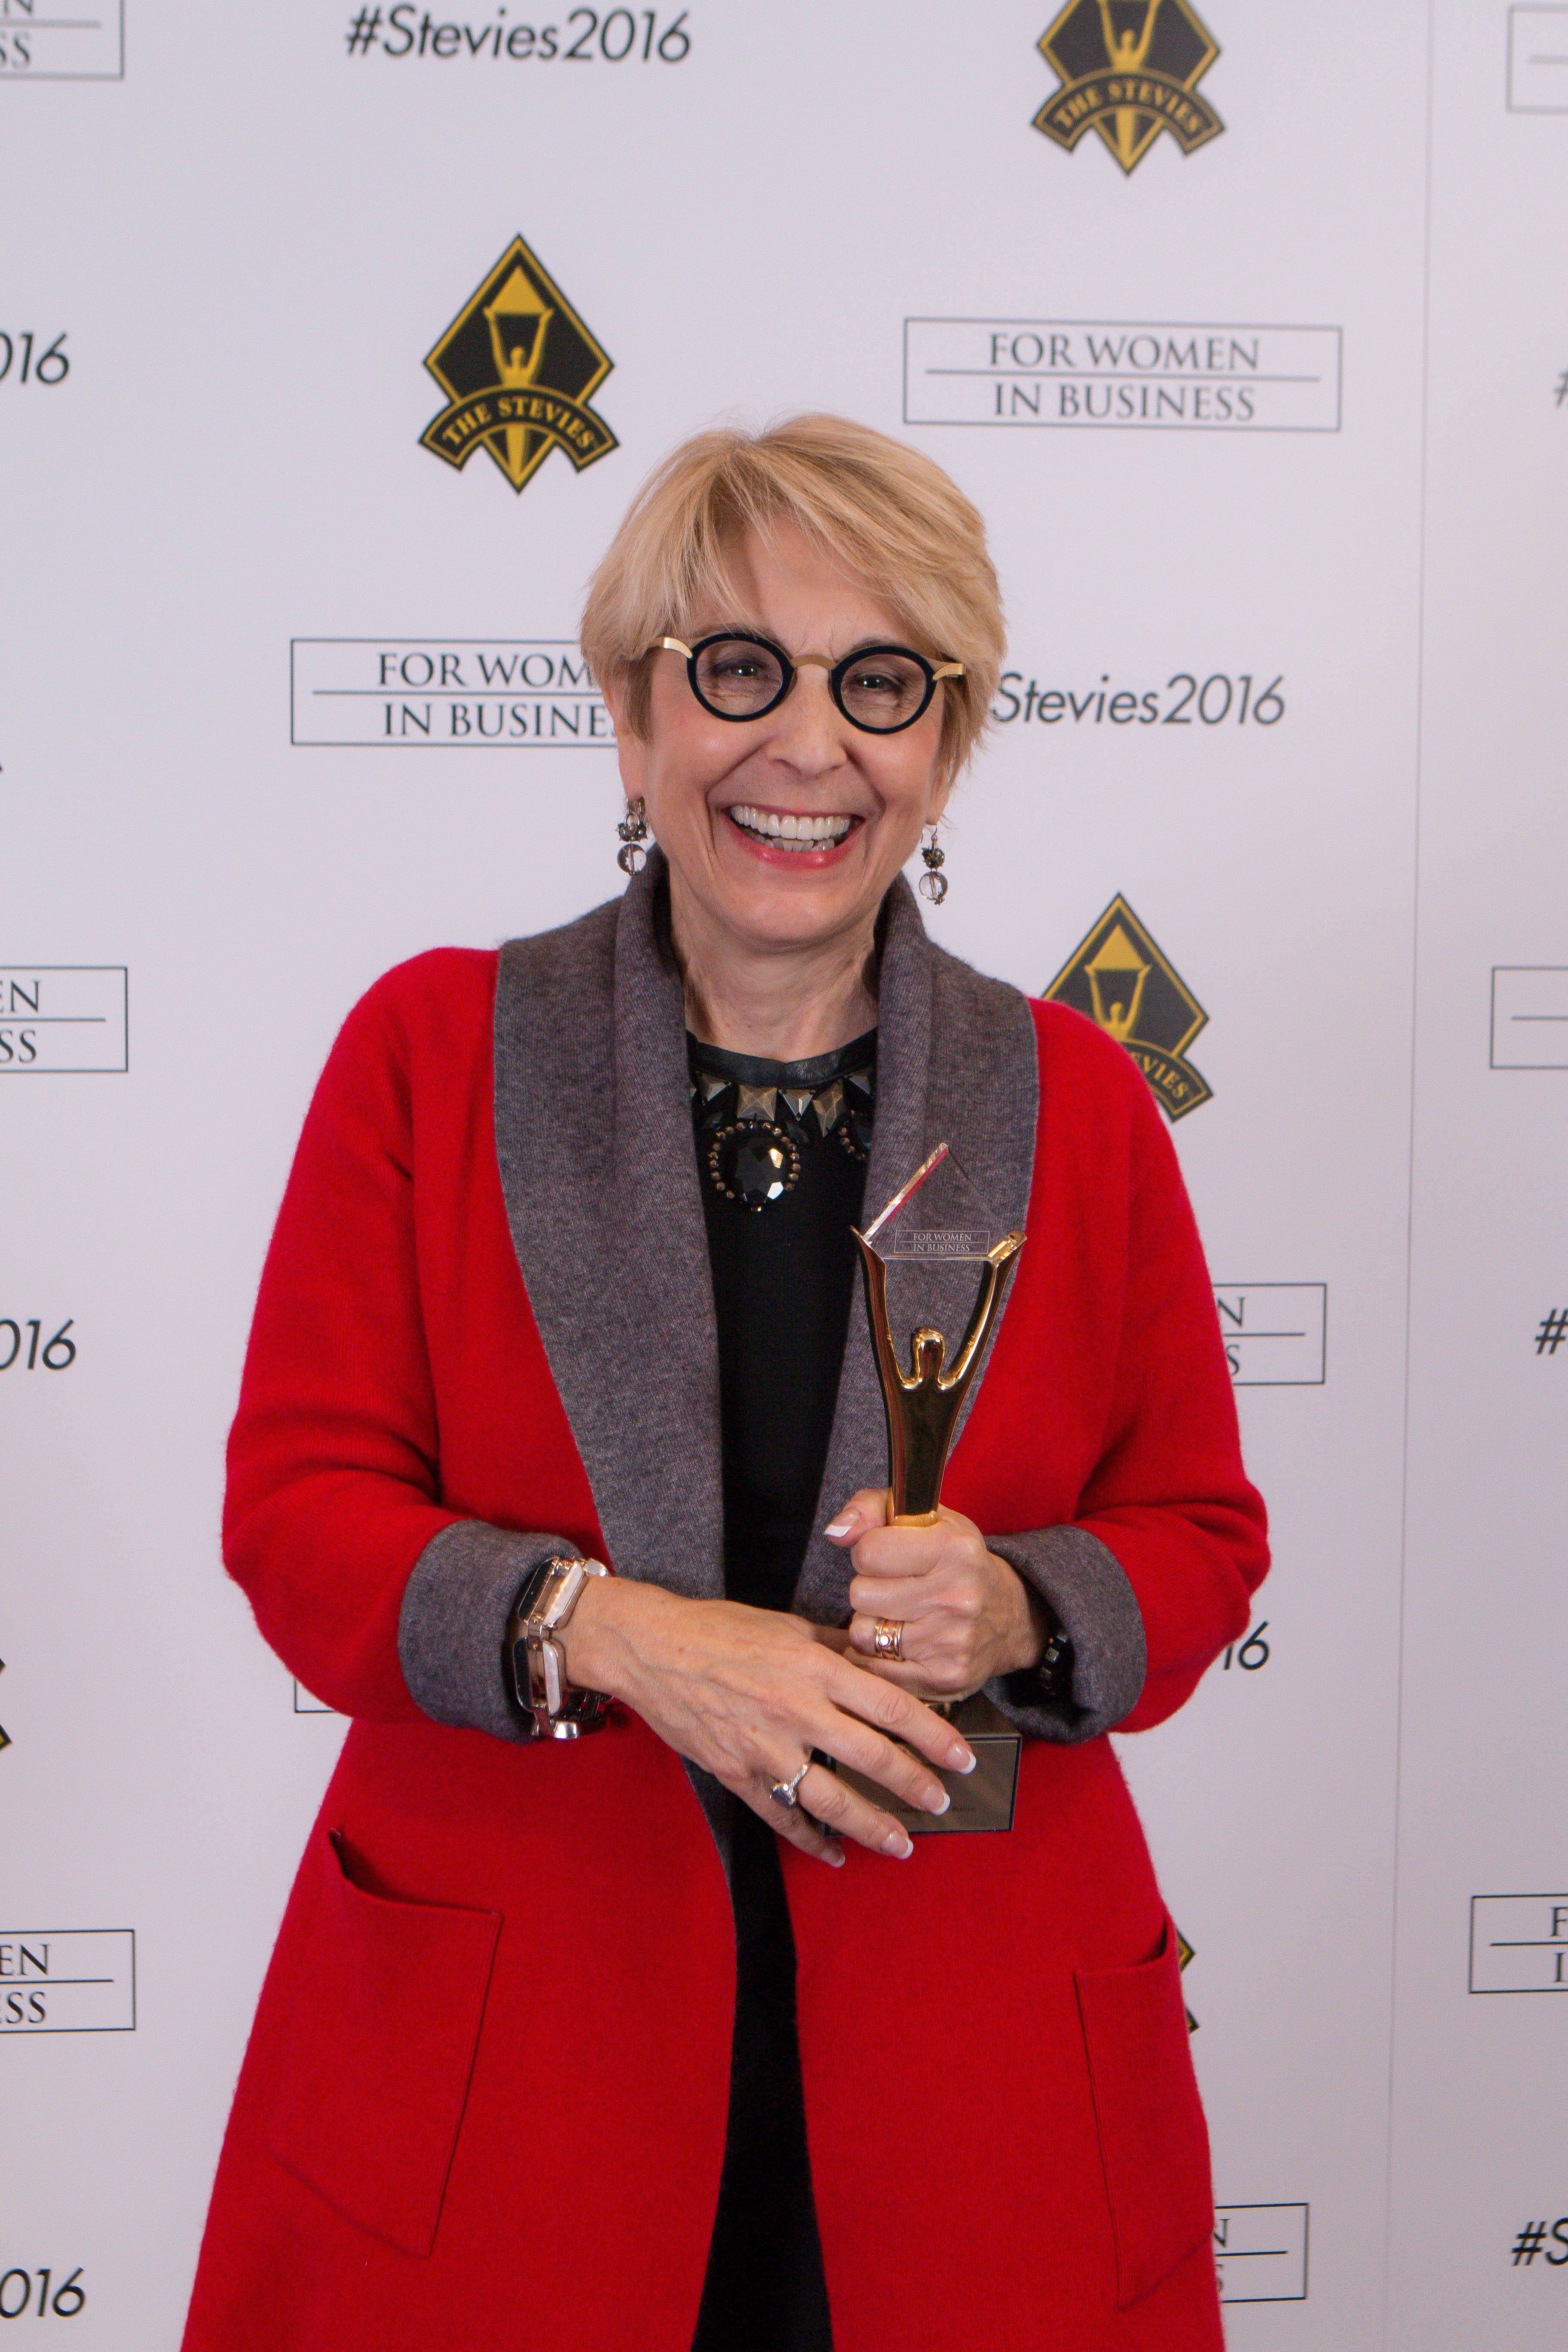 Peggy Klaus wins the 2016 Stevie Gold Award for Coach of the Year, Women in Business! (Photo: Business Wire).